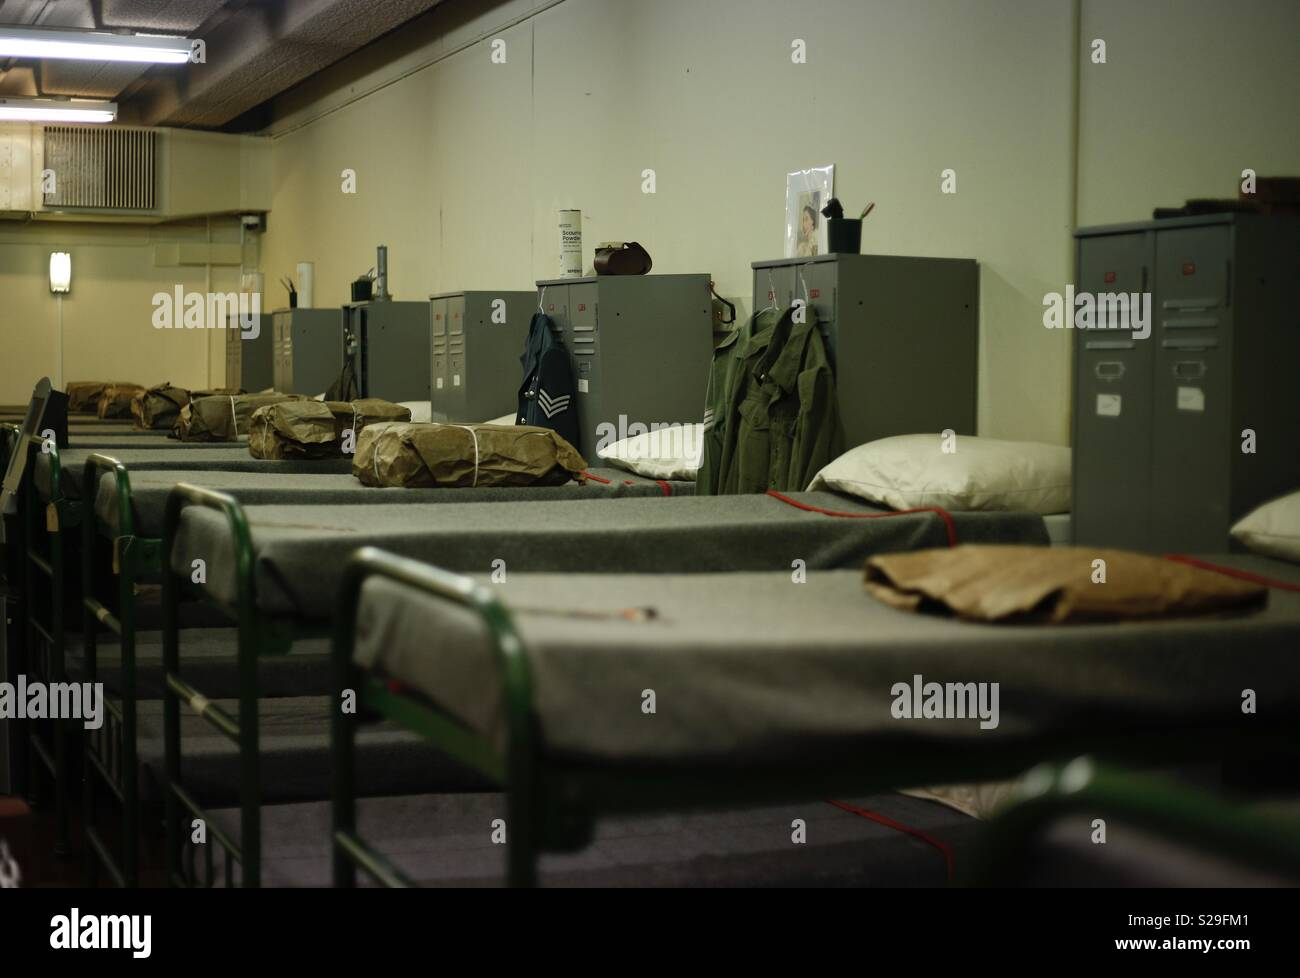 Barracks Beds Stock Photos & Barracks Beds Stock Images - Alamy